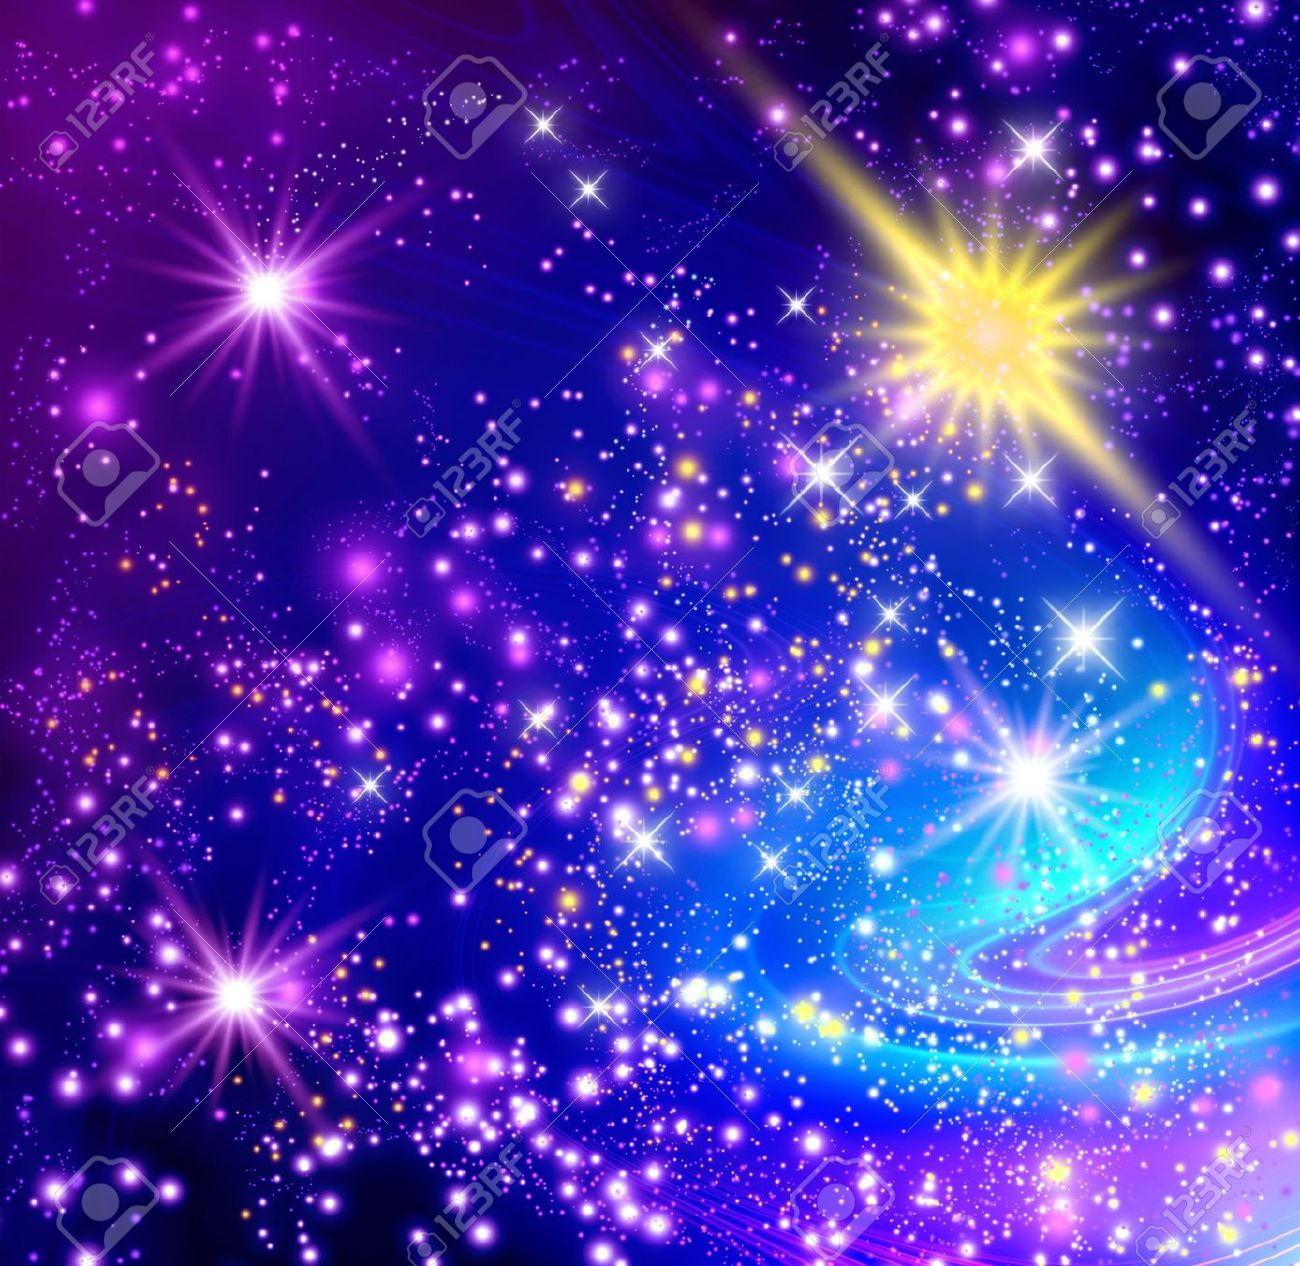 Background with glowing stars Stock Photo - 18063863